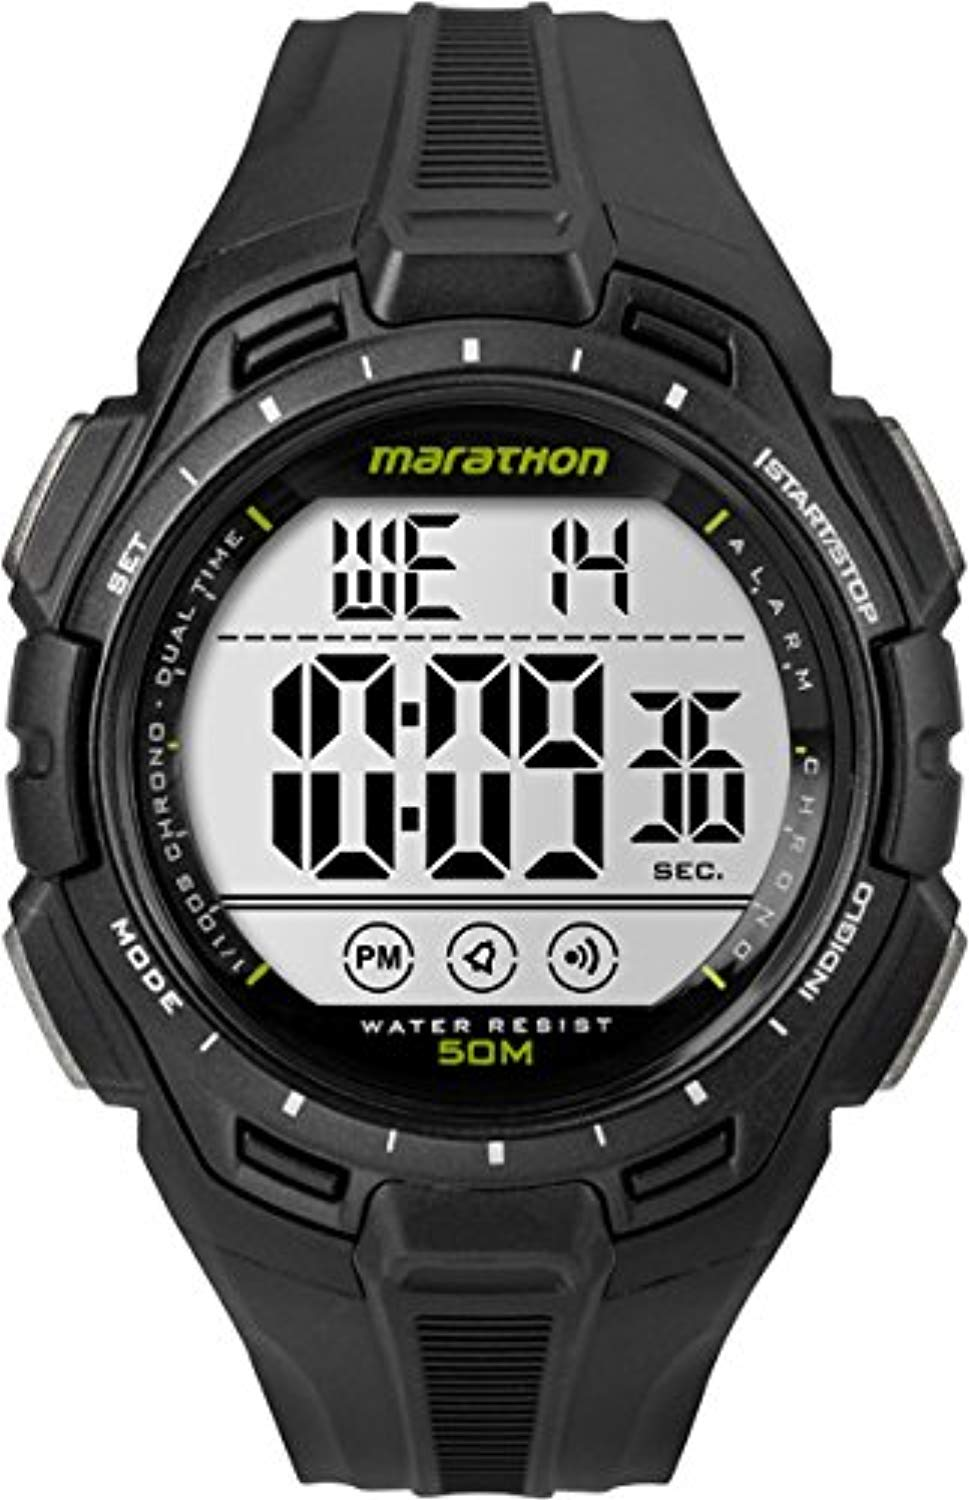 Timex Marathon Men's Watch with LCD Dial Digital Display and Resin Strap